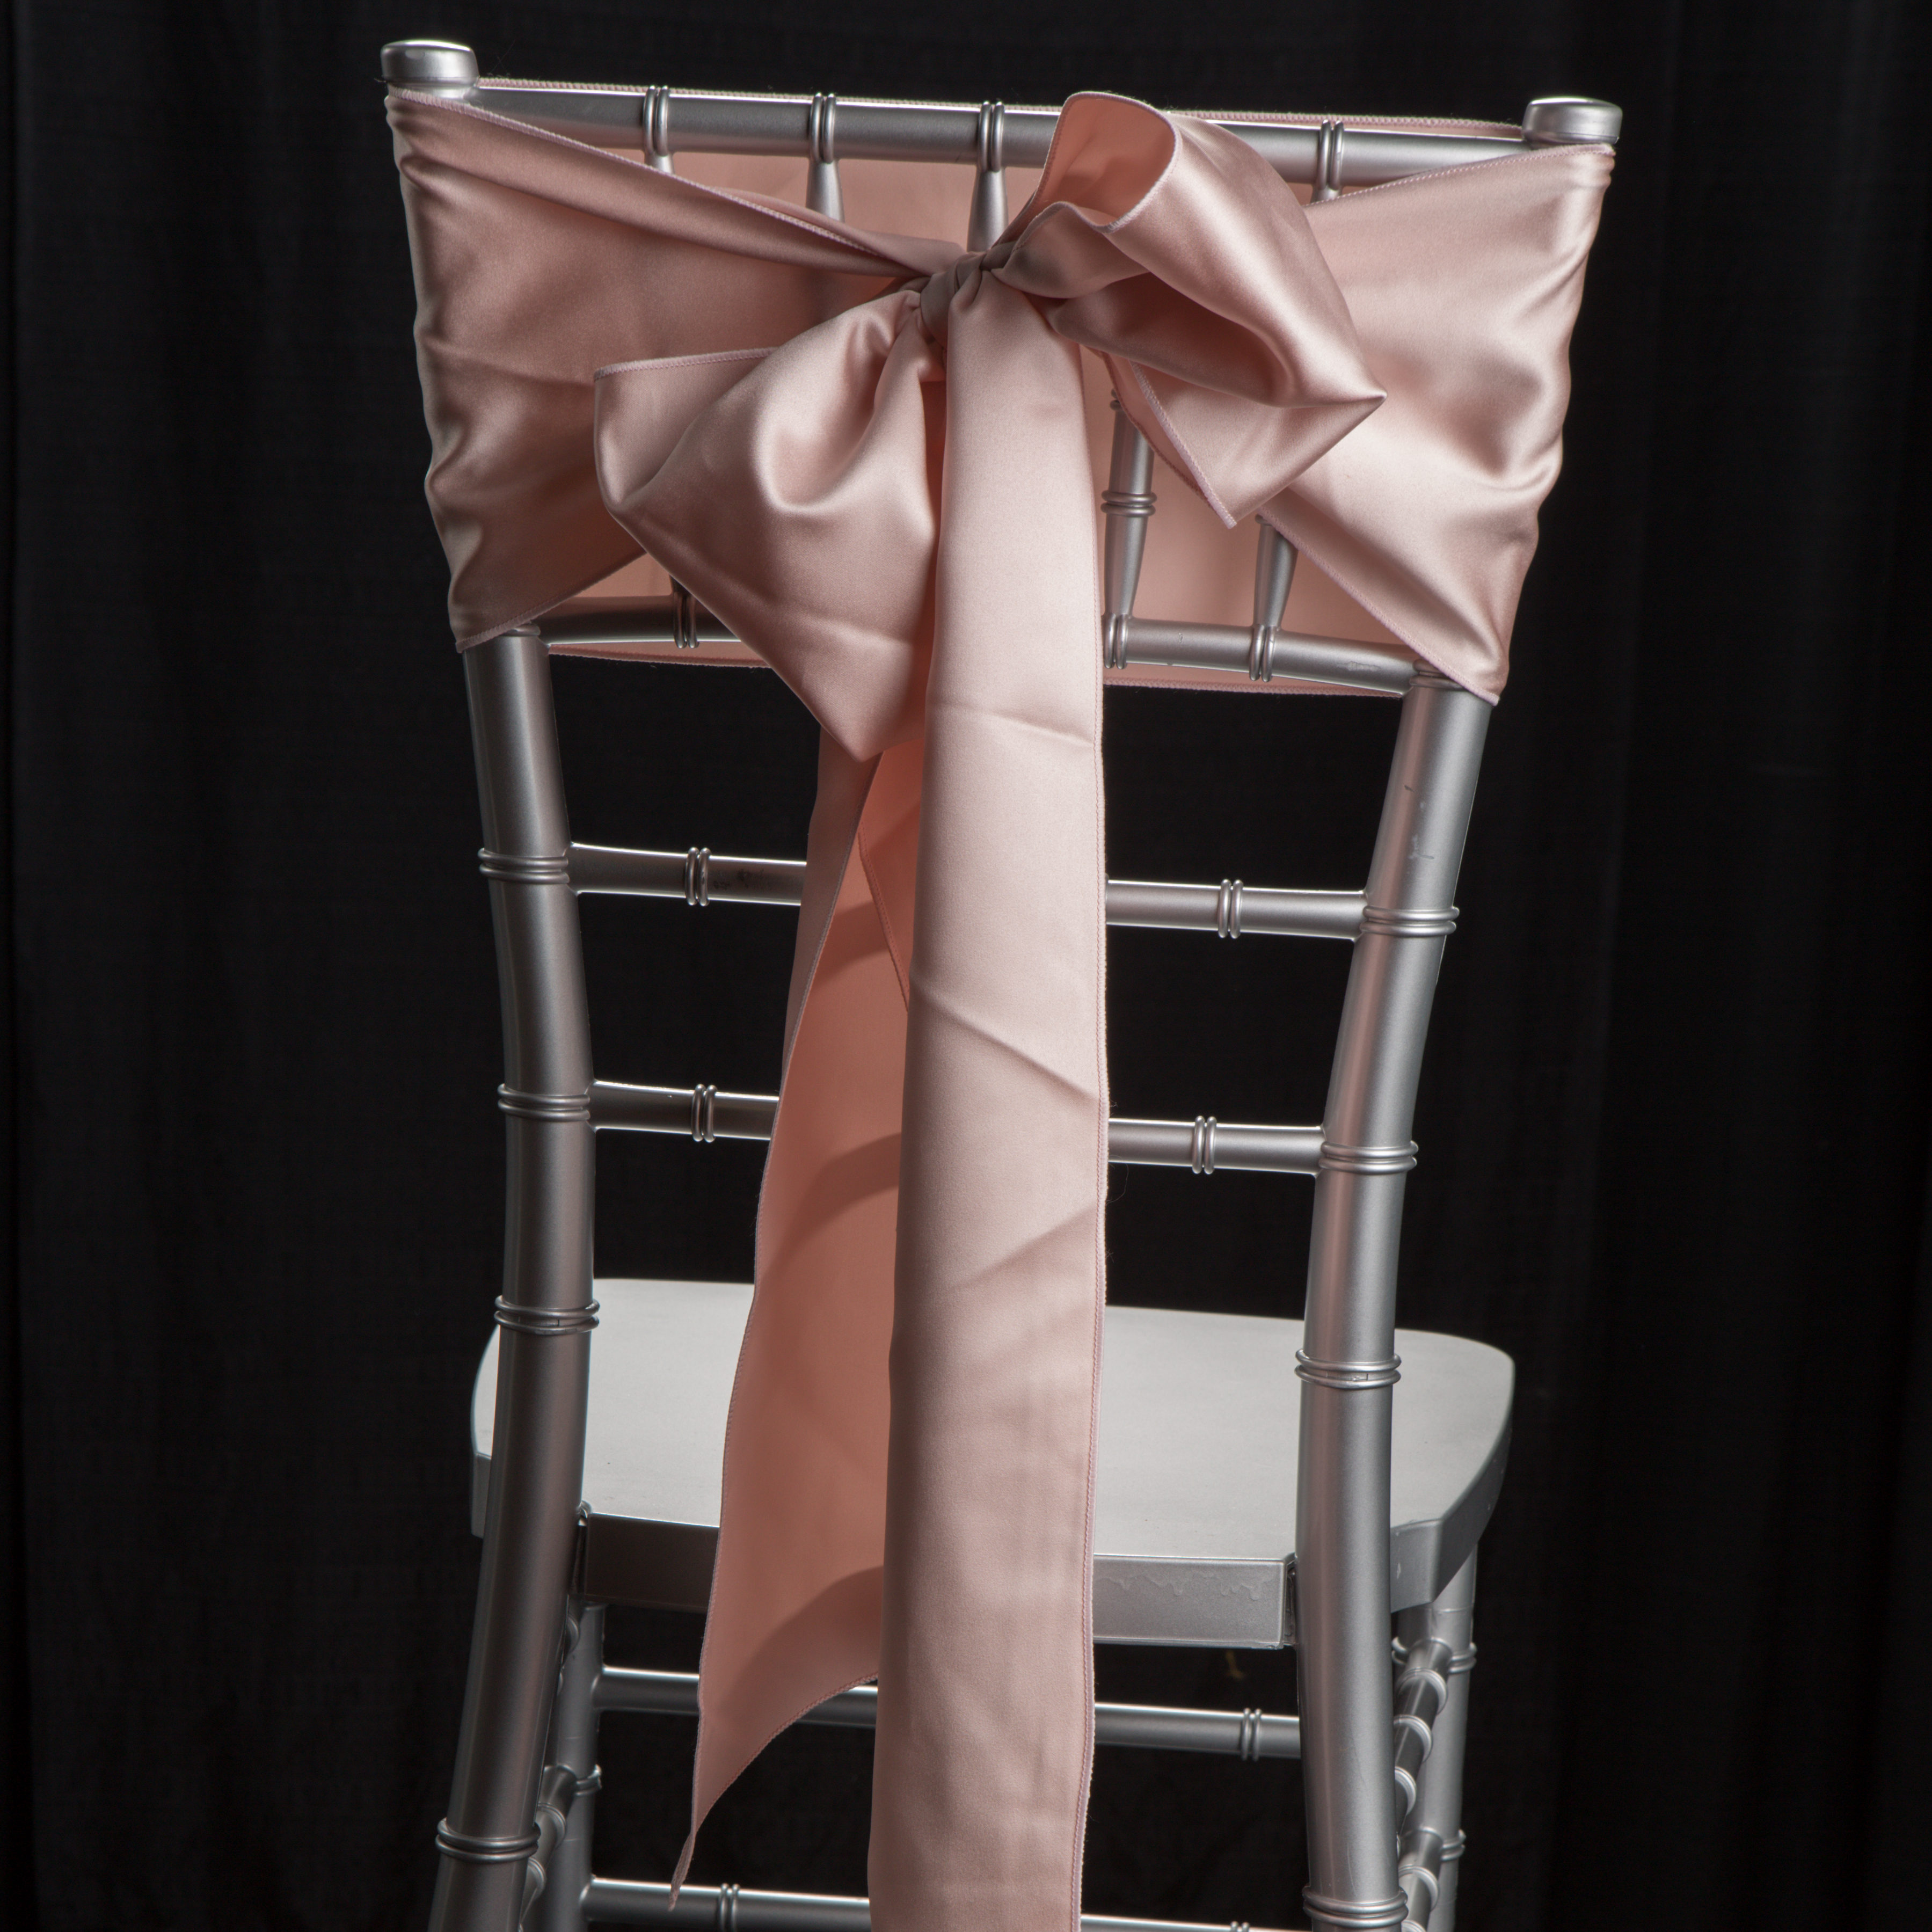 rent tablecloths and chair covers near me best heavy duty barber chairs linen rentals cincinnati linens for a ands party rental